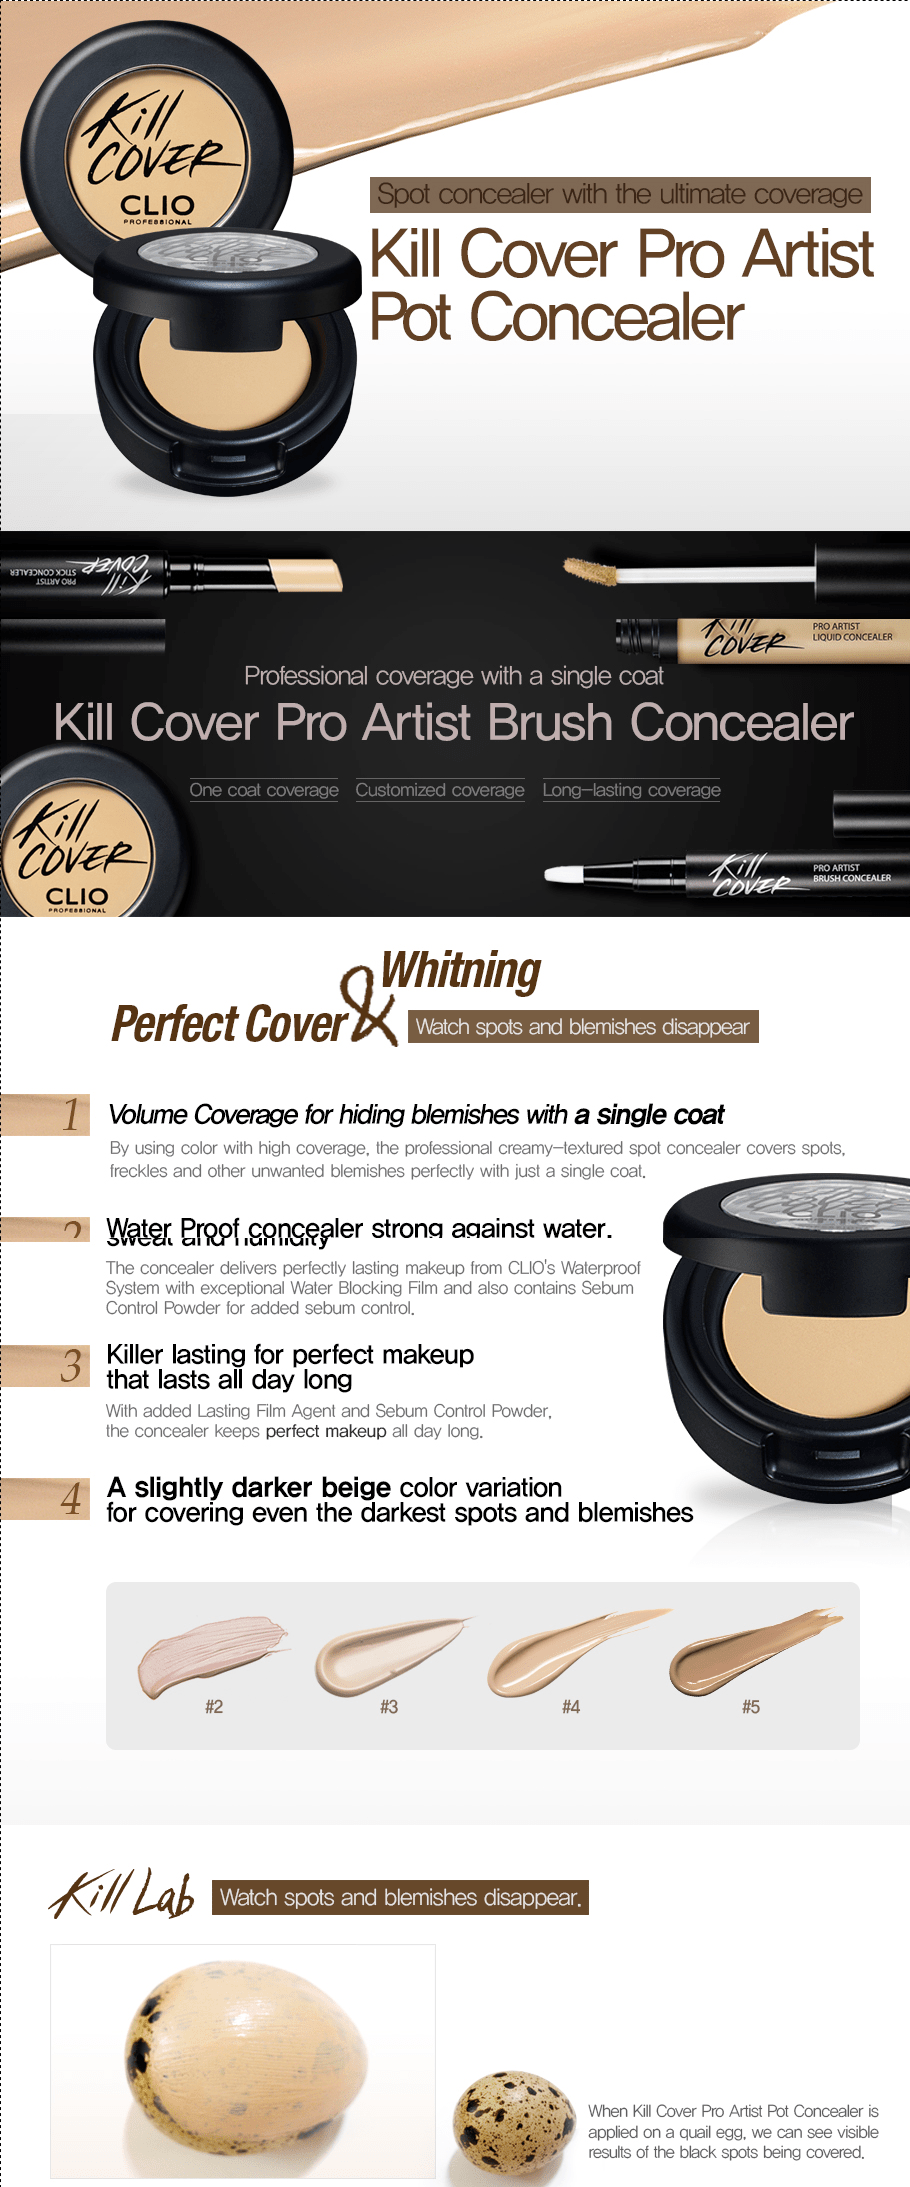 CLIO Kill Cover Artist Pot Concealer